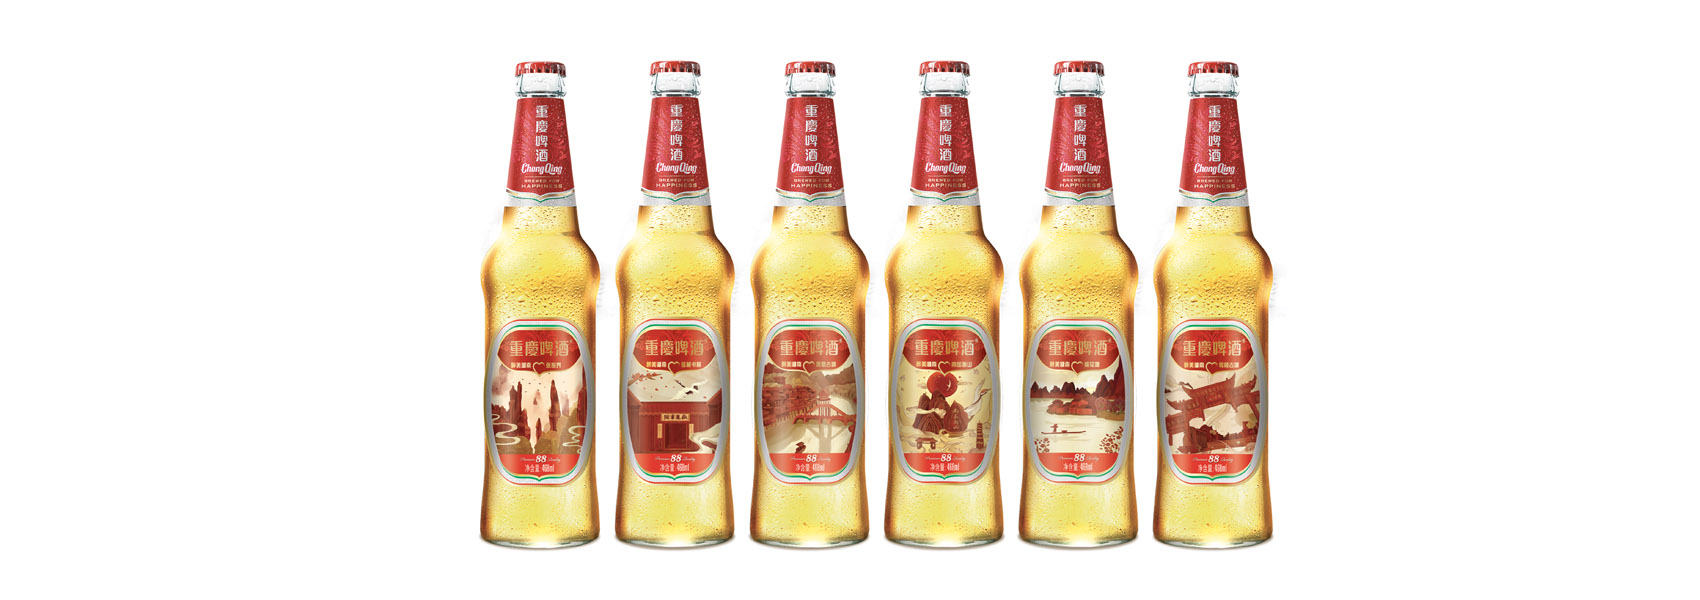 Showcasing the Beauty of Hunan with ChongQing Beer